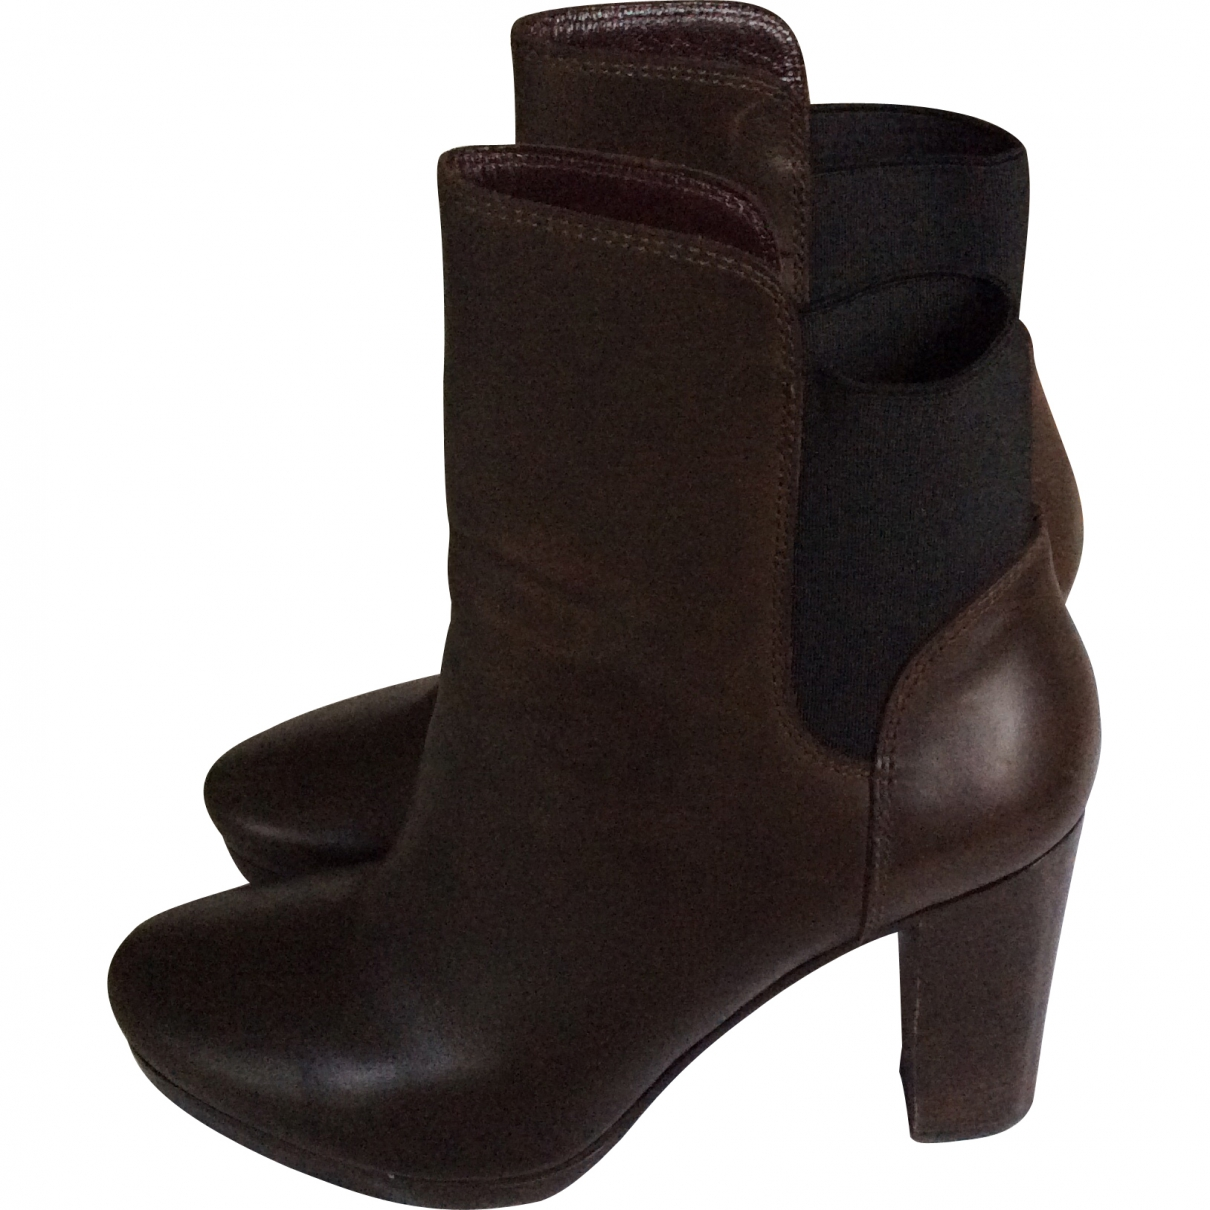 Vanessa Bruno \N Brown Leather Ankle boots for Women 37 EU